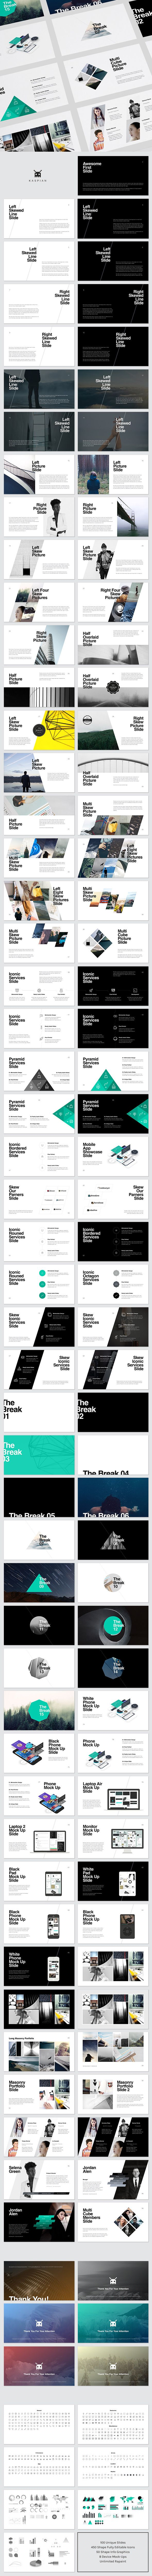 best 25+ free portfolio template ideas on pinterest | free, Presentation templates